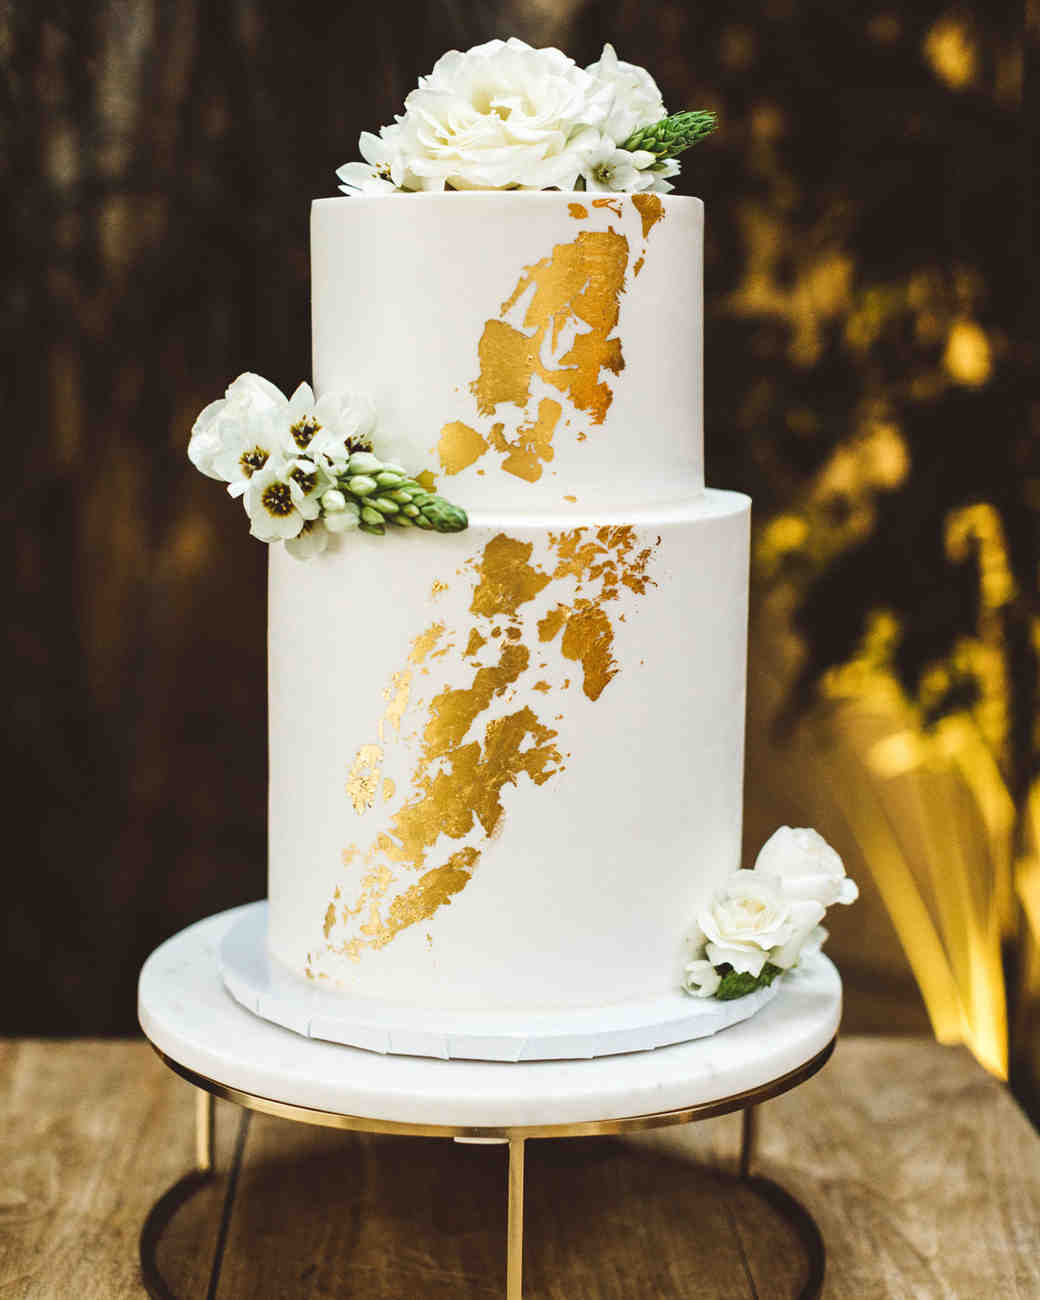 kaily matt wedding los angeles gold wedding cake with white flowers